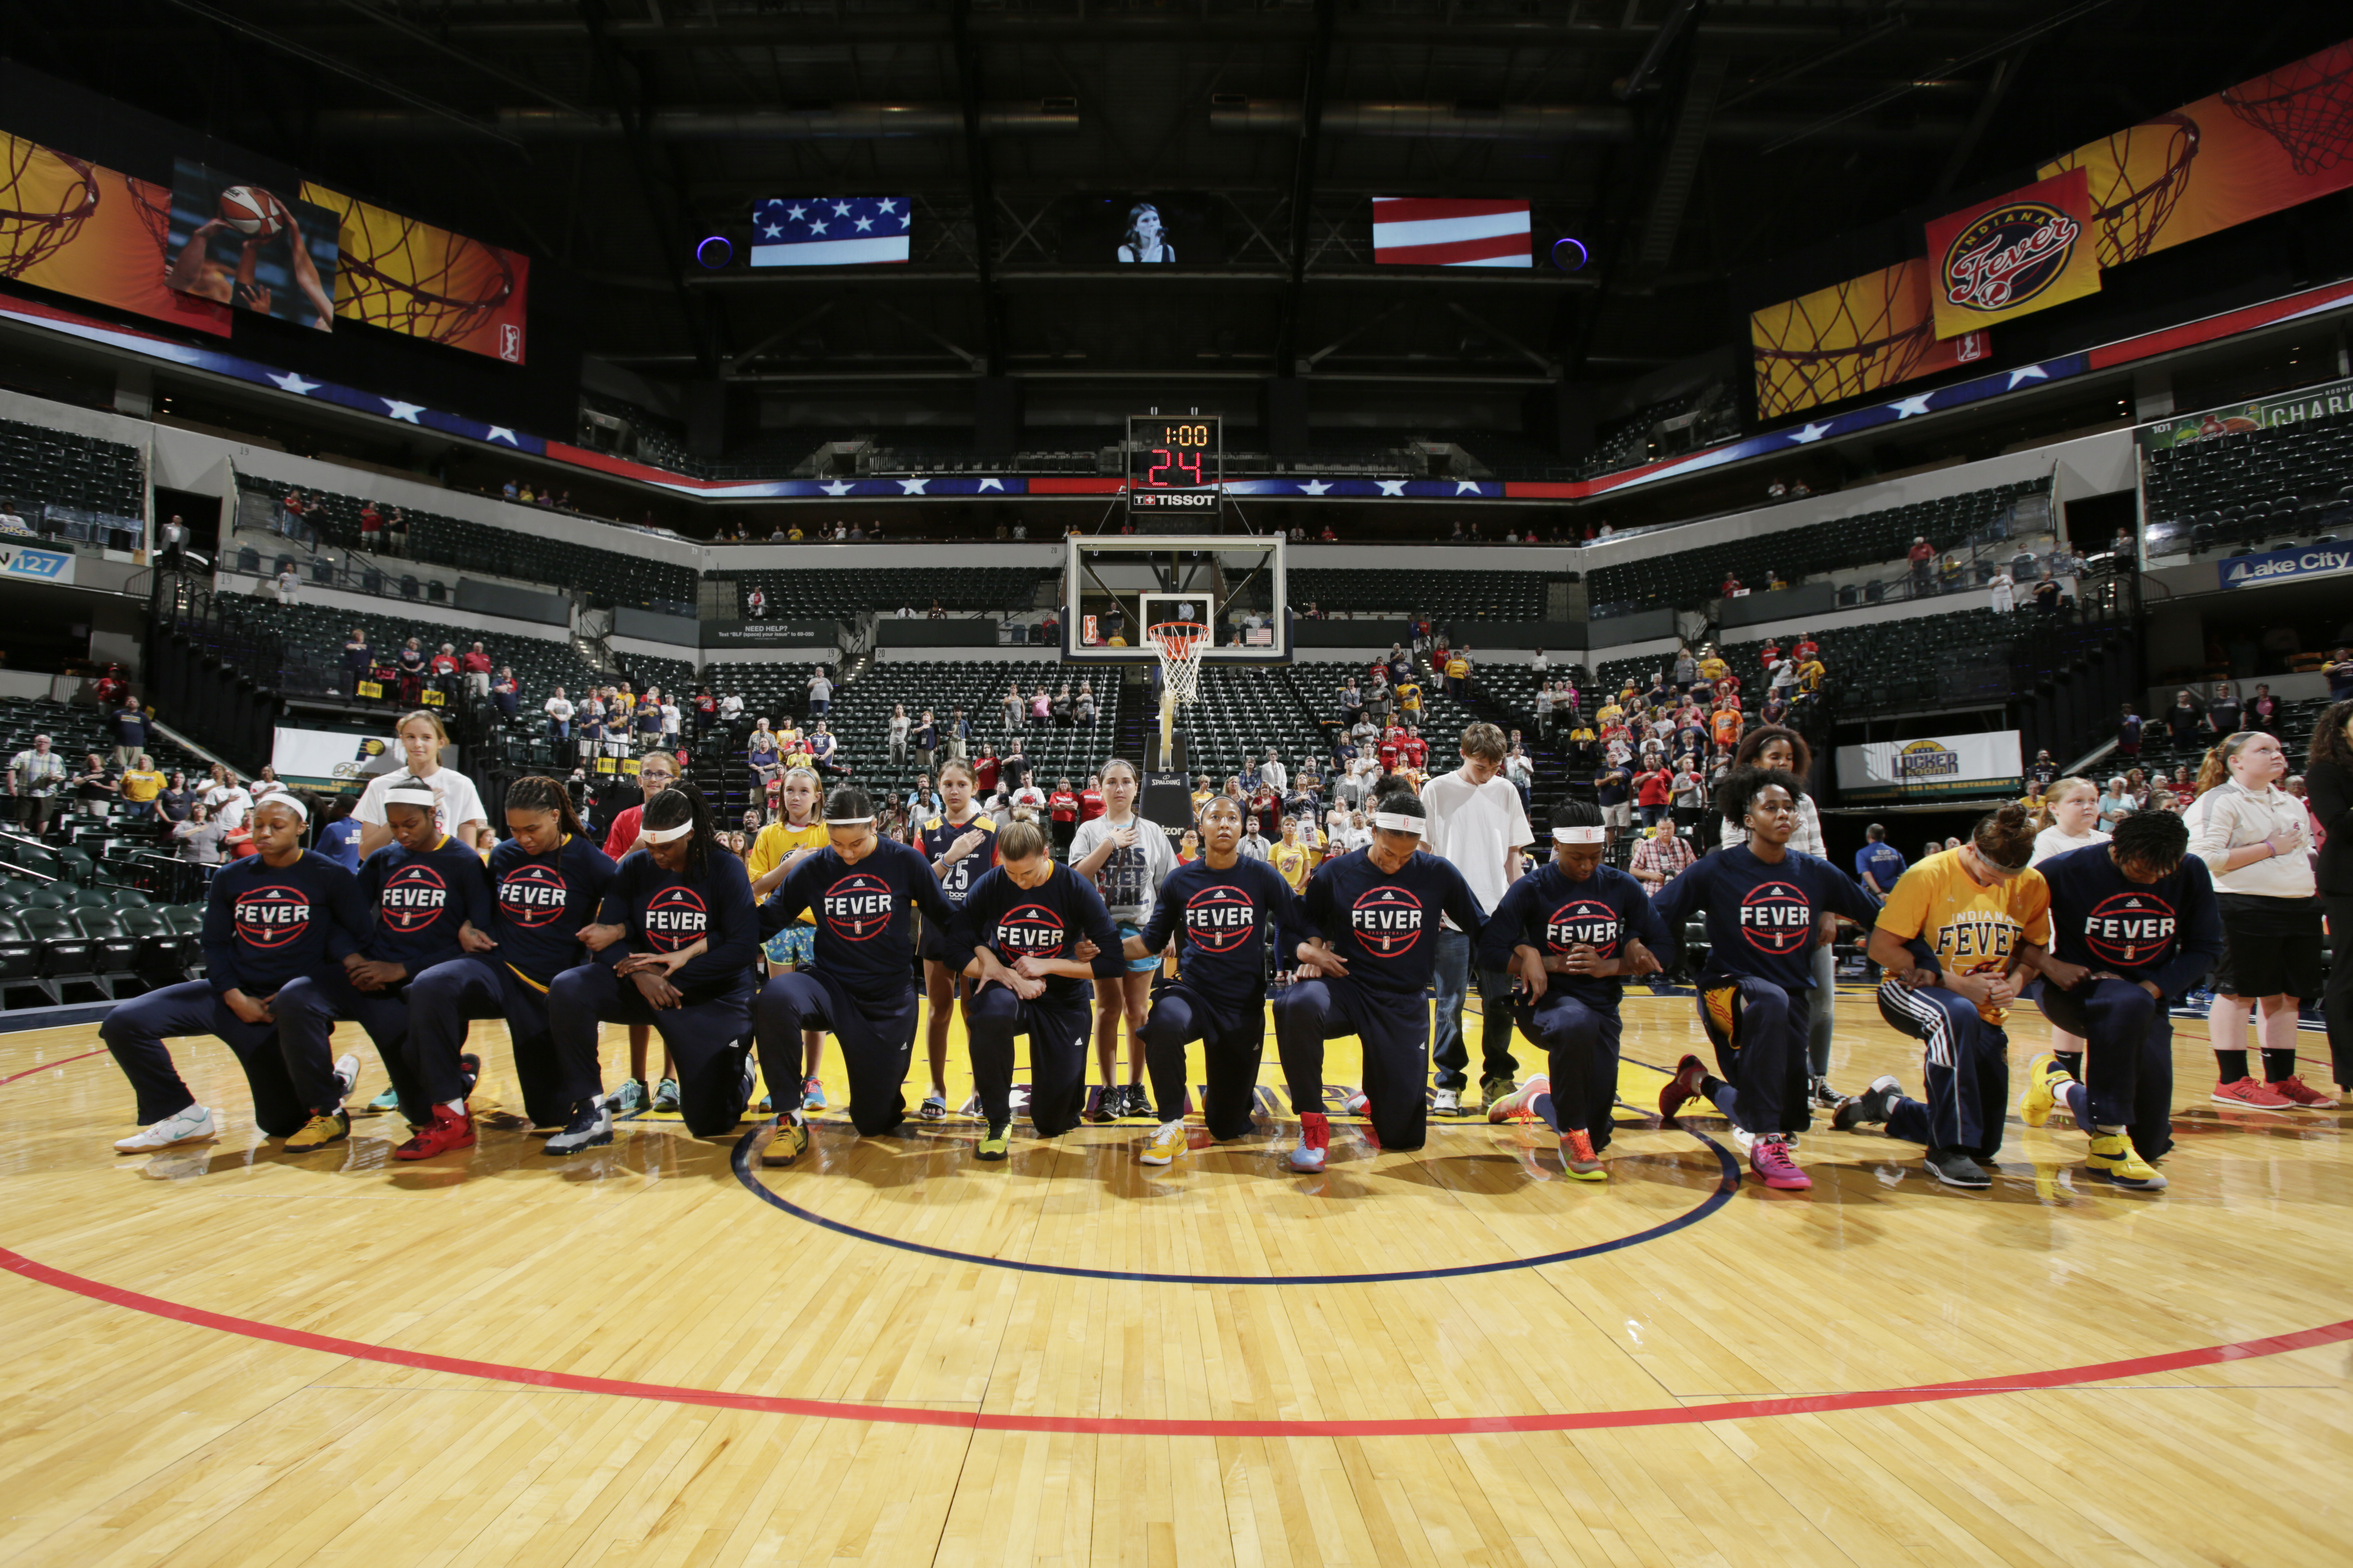 Indiana Fever, knee, protest